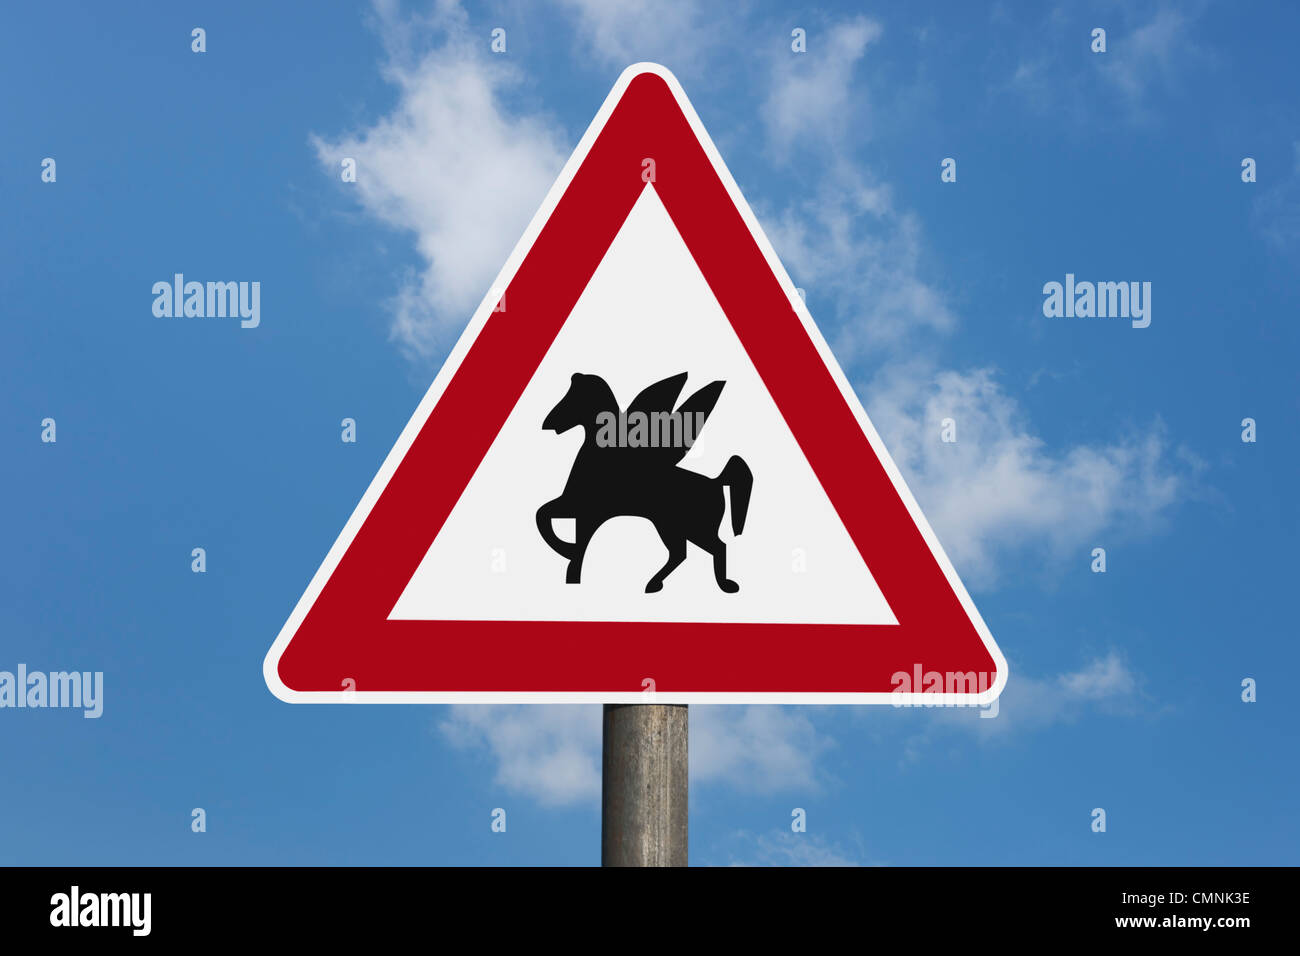 Detail photo of a danger sign with the winged horse Pegasus in the middle, background sky. - Stock Image